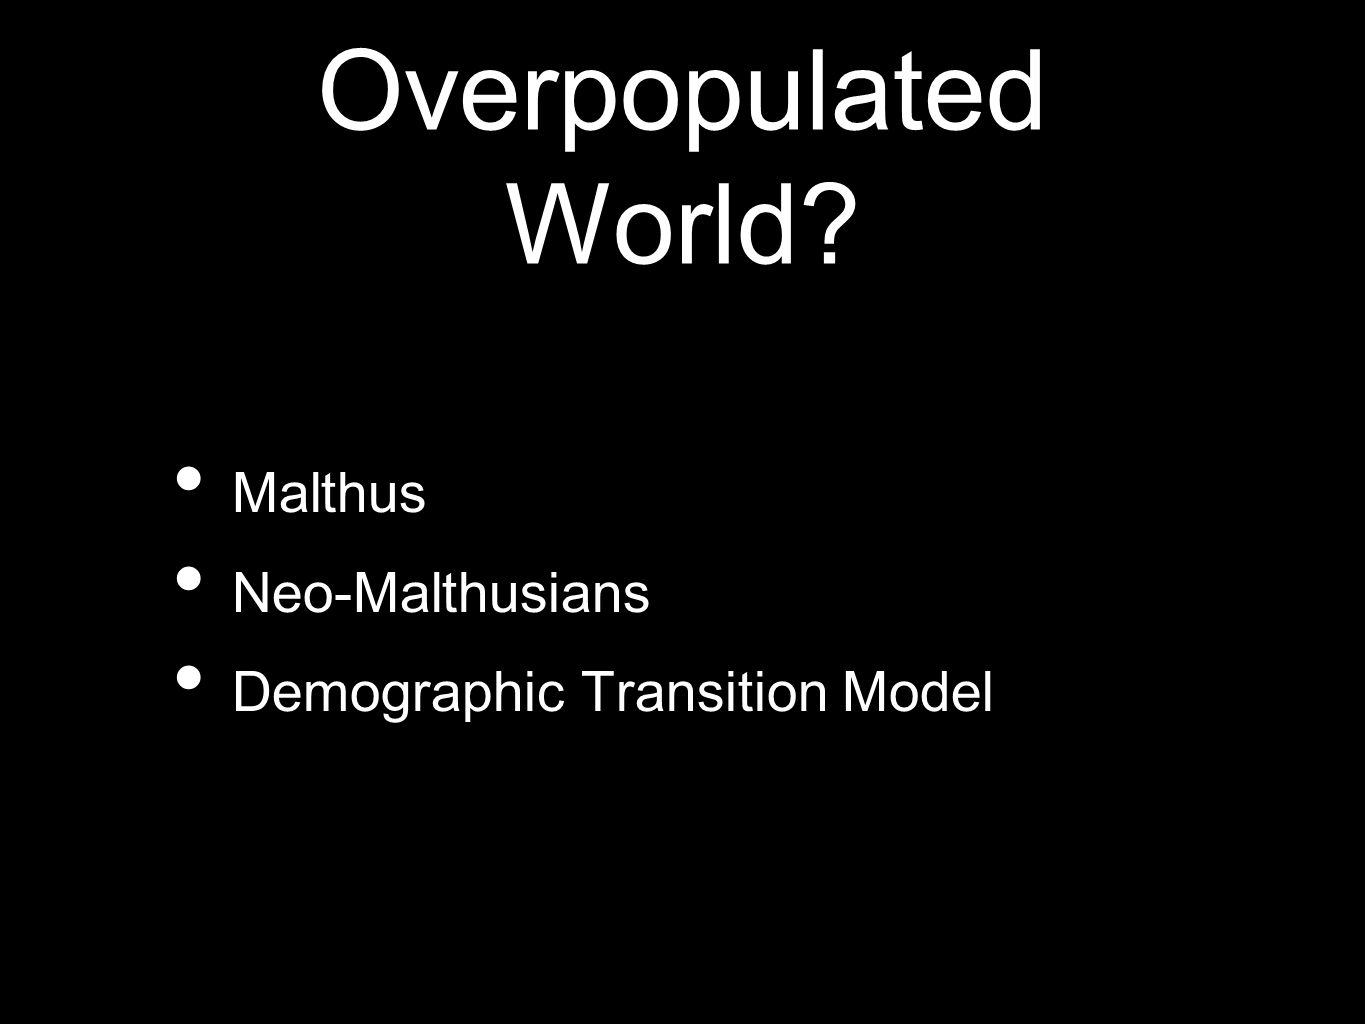 Overpopulated World Malthus Neo-Malthusians